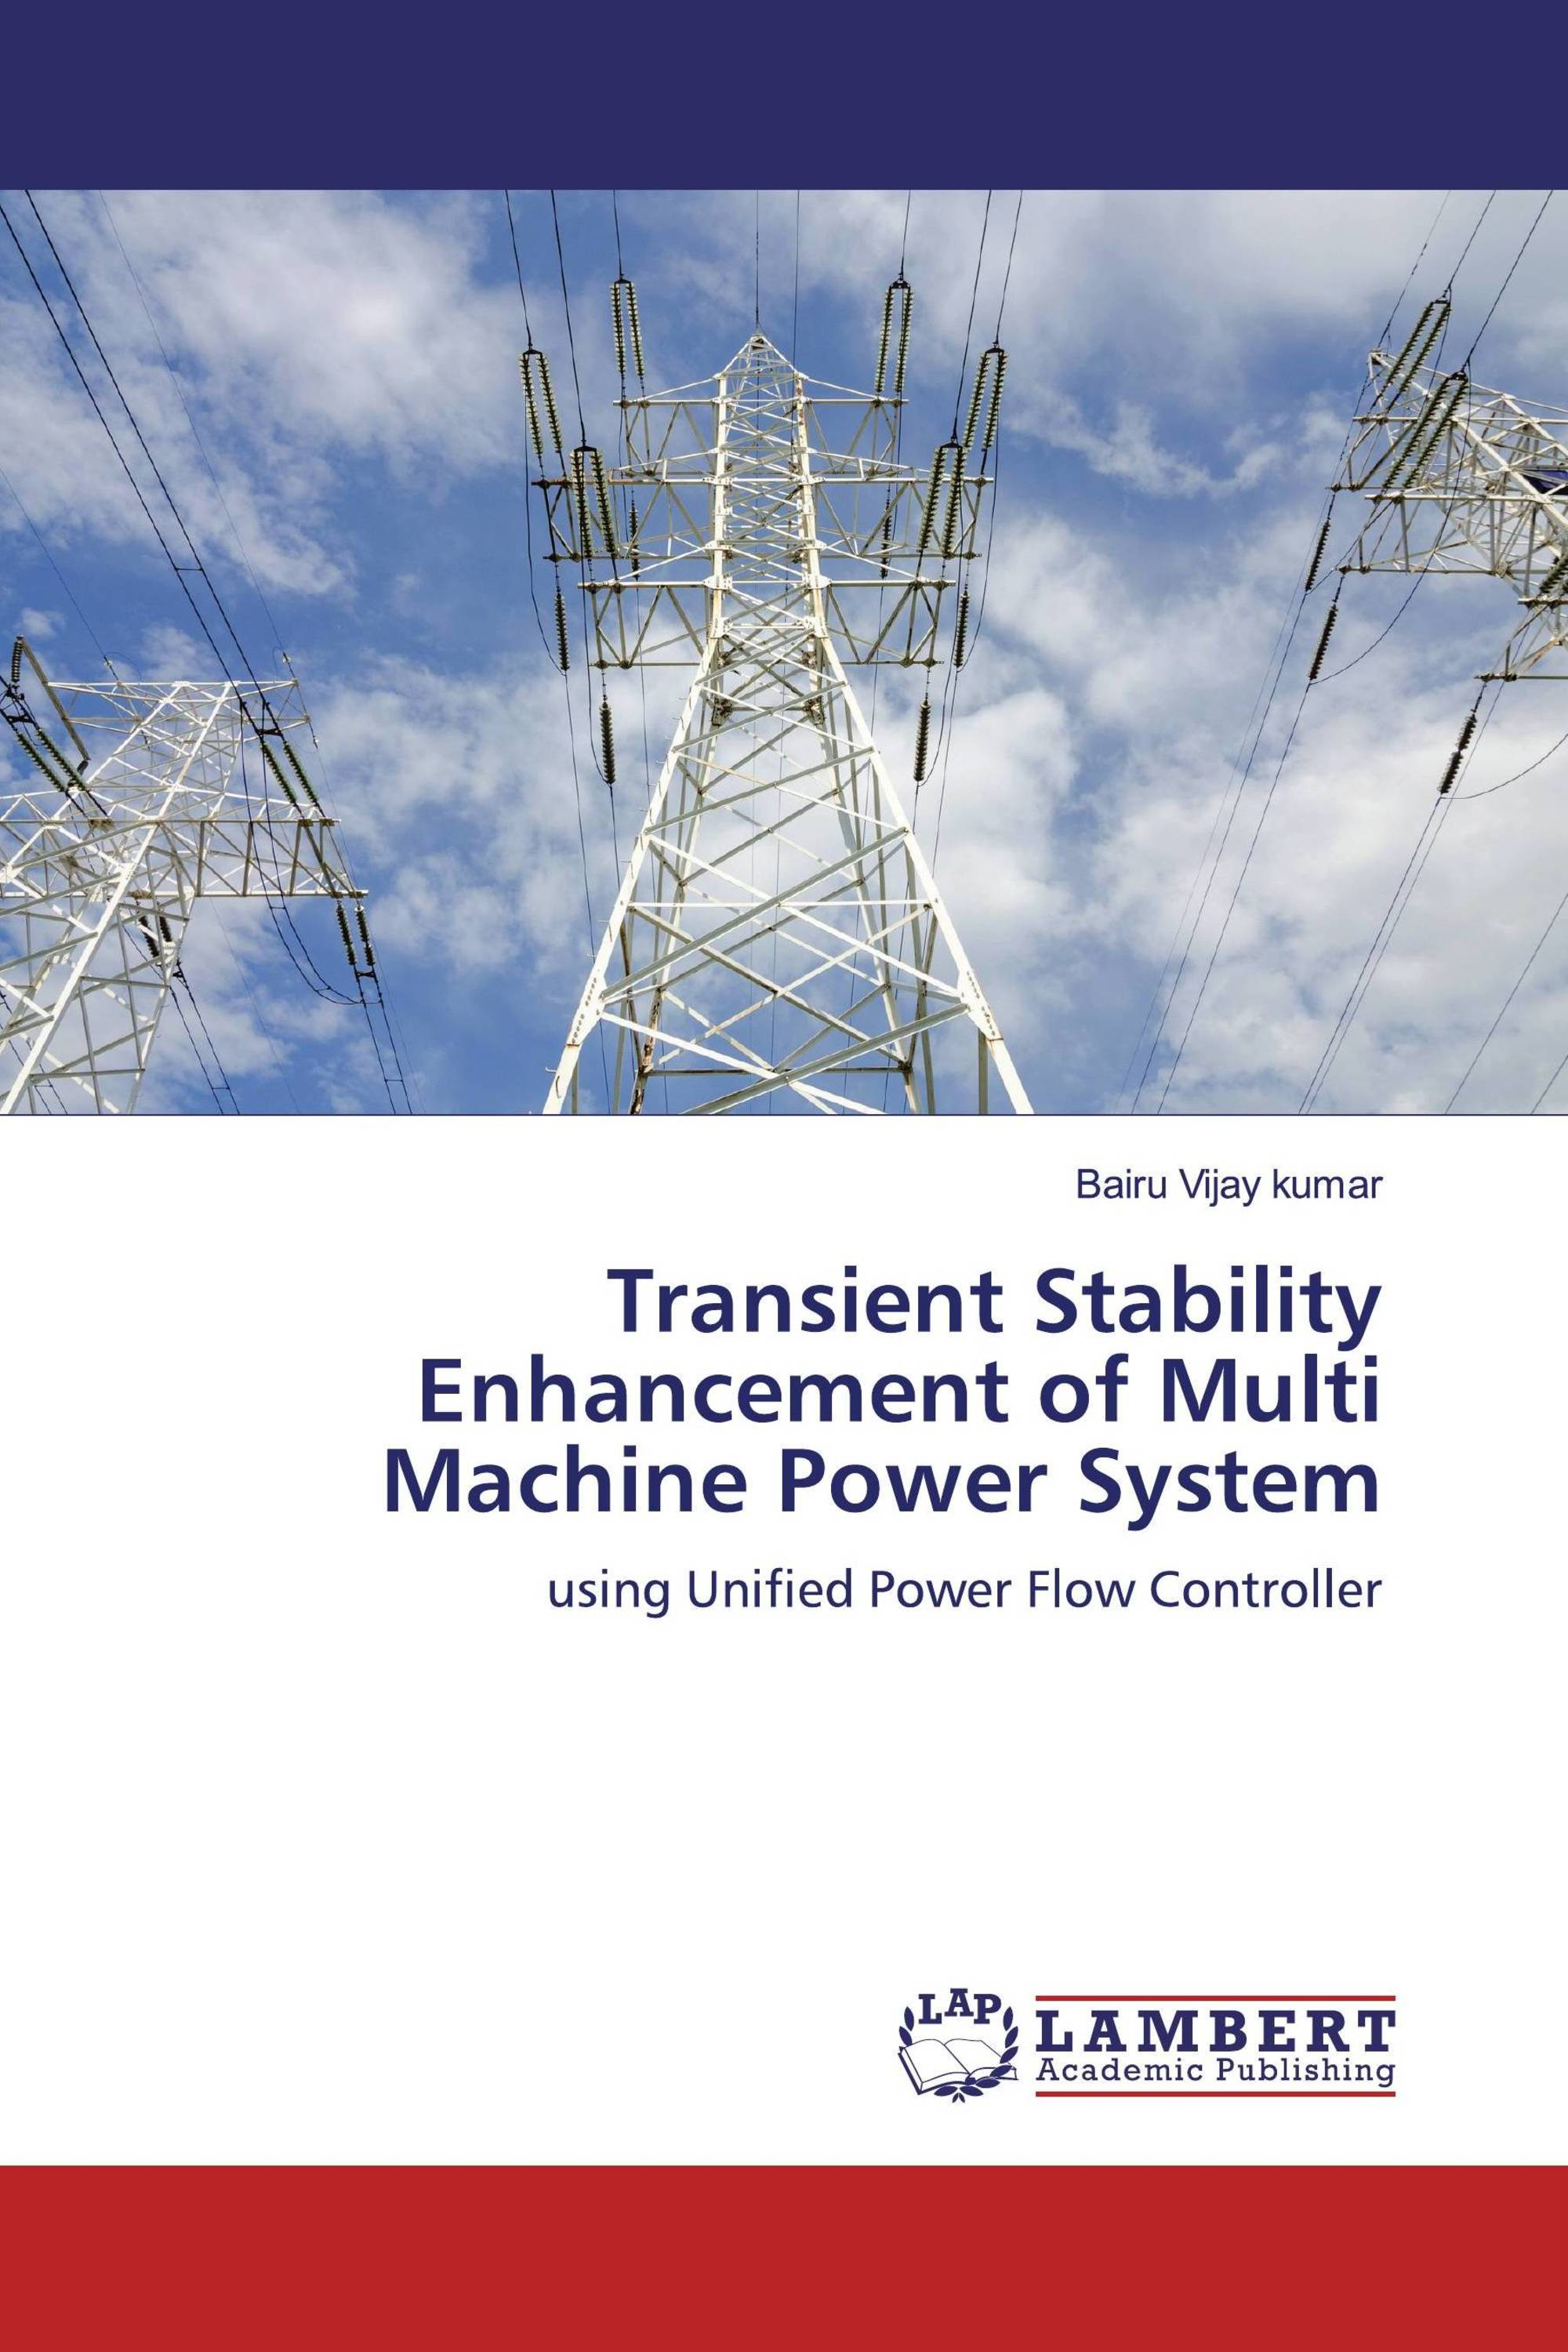 Transient Stability Enhancement of Multi Machine Power System